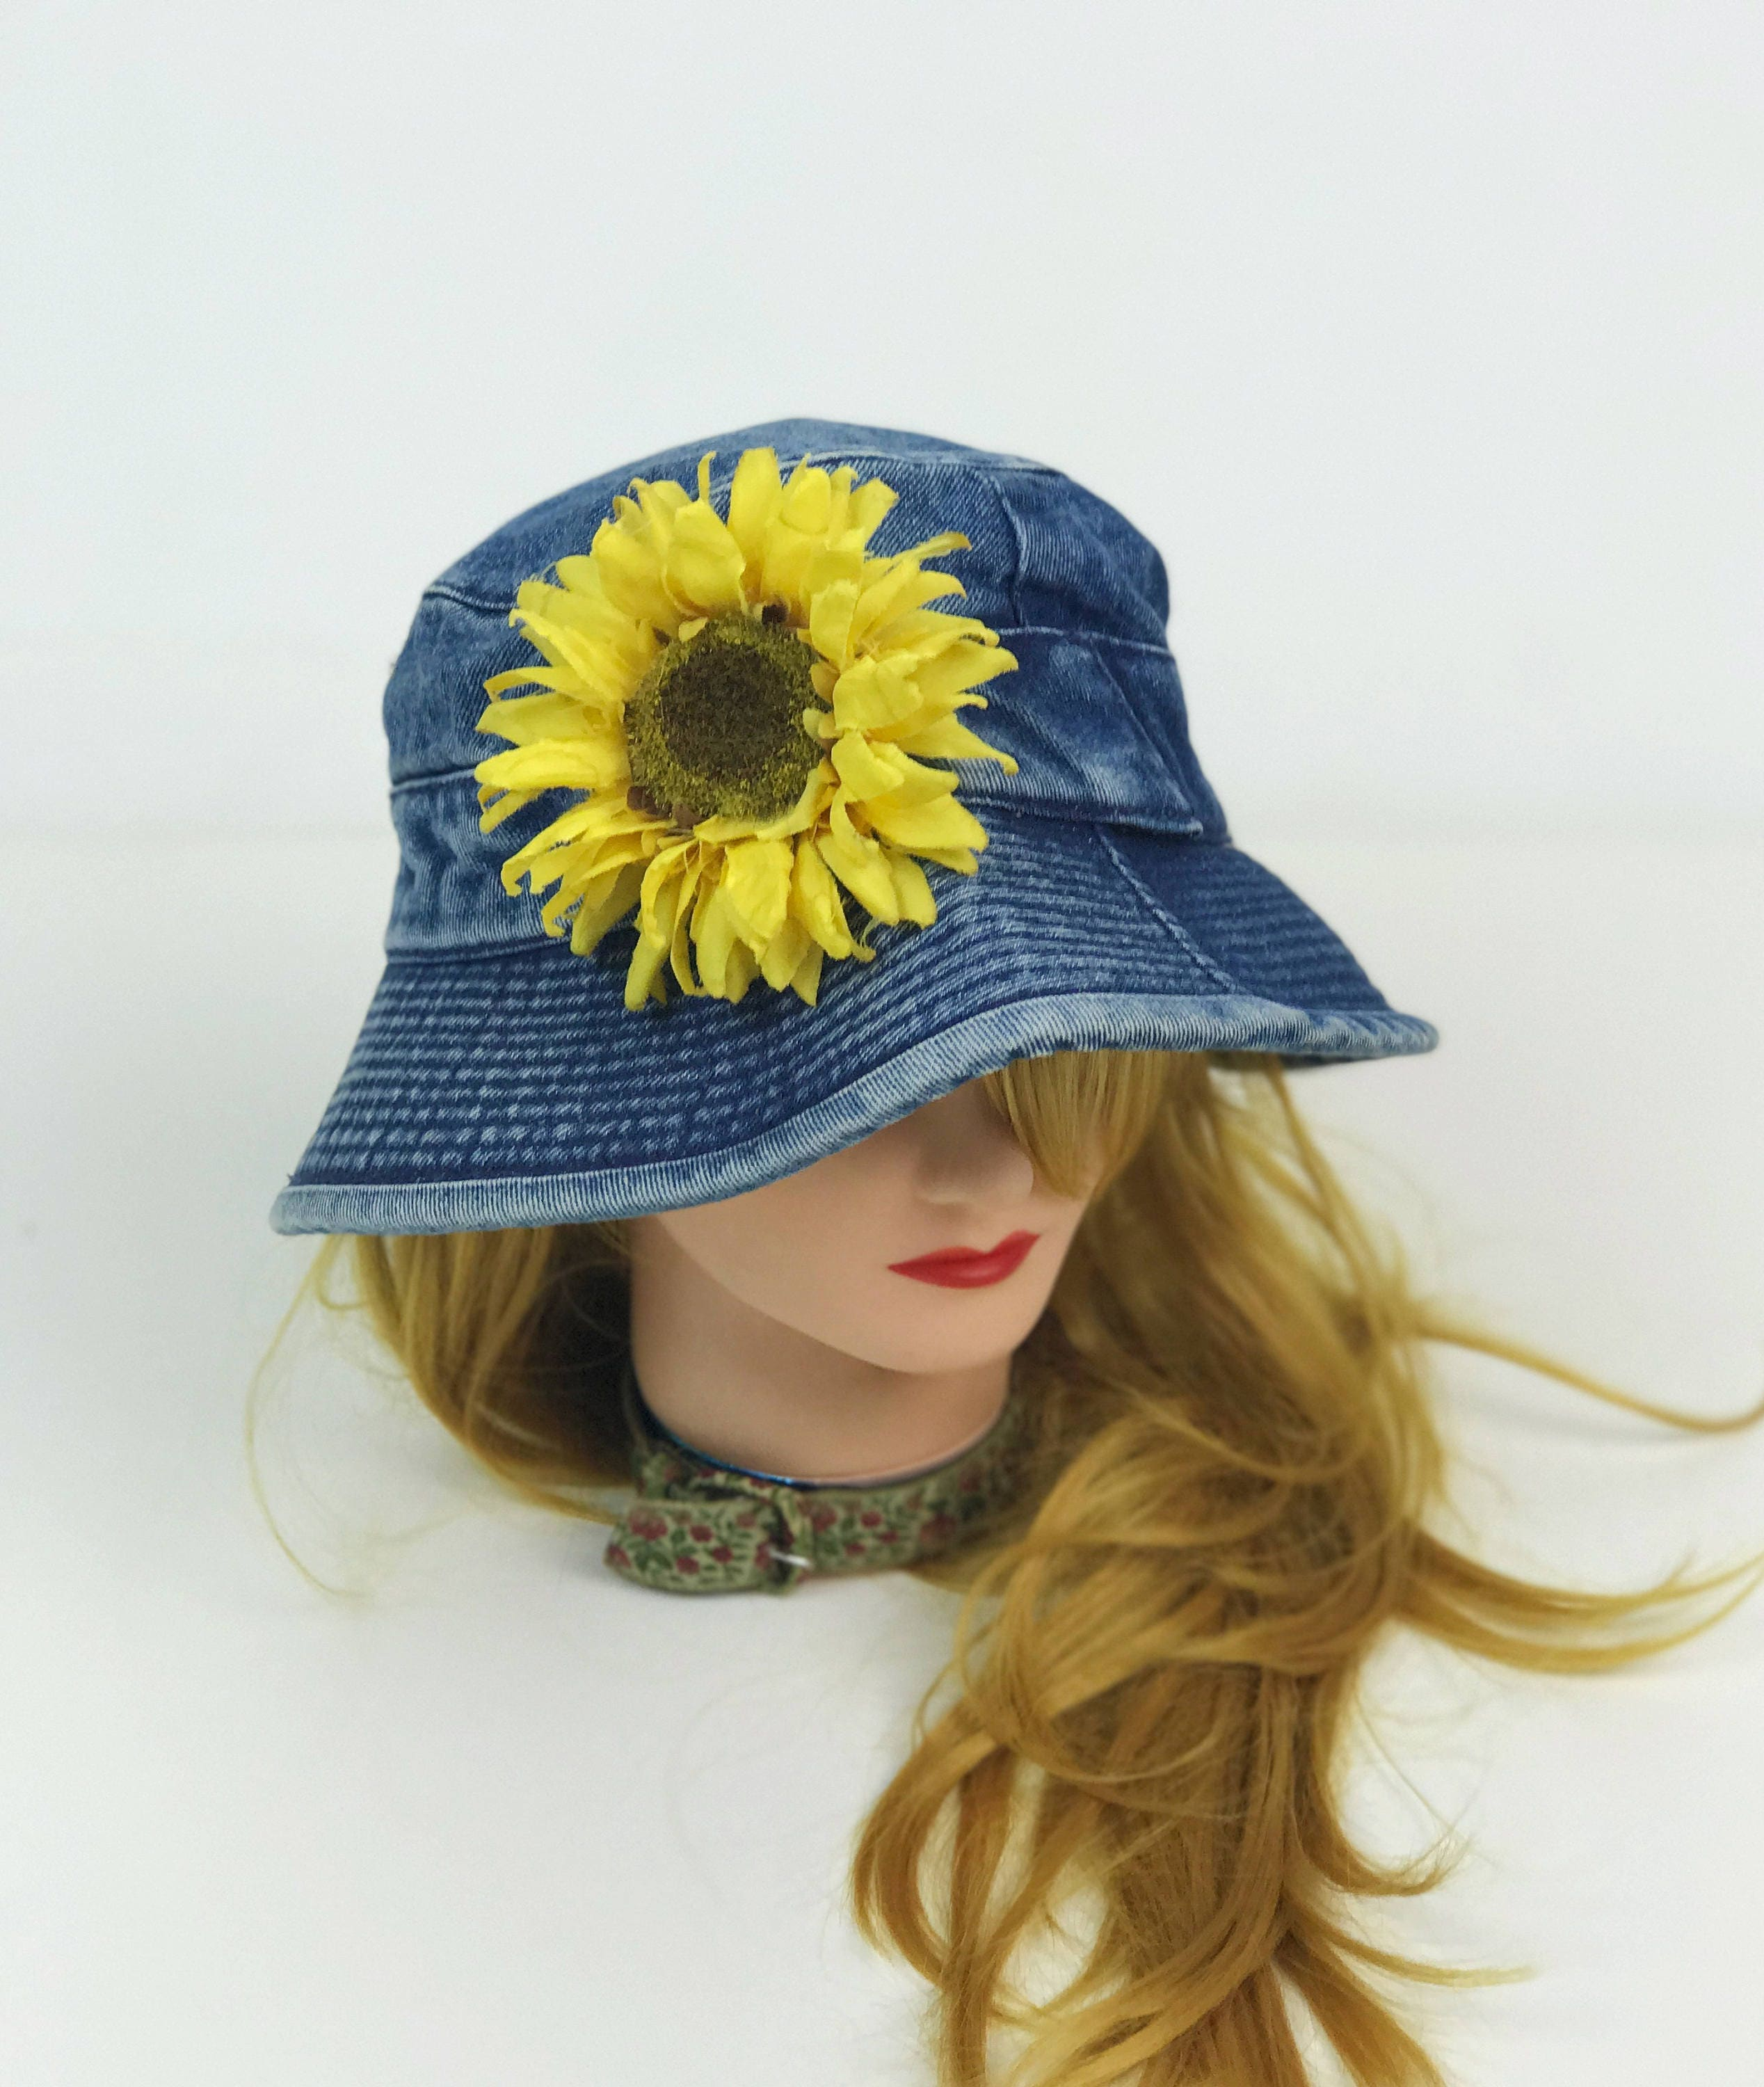 b238930de0ff2 90 s SUNFLOWER Denim Bucket Hat - Large Slouchy Sun Flower Hat ...